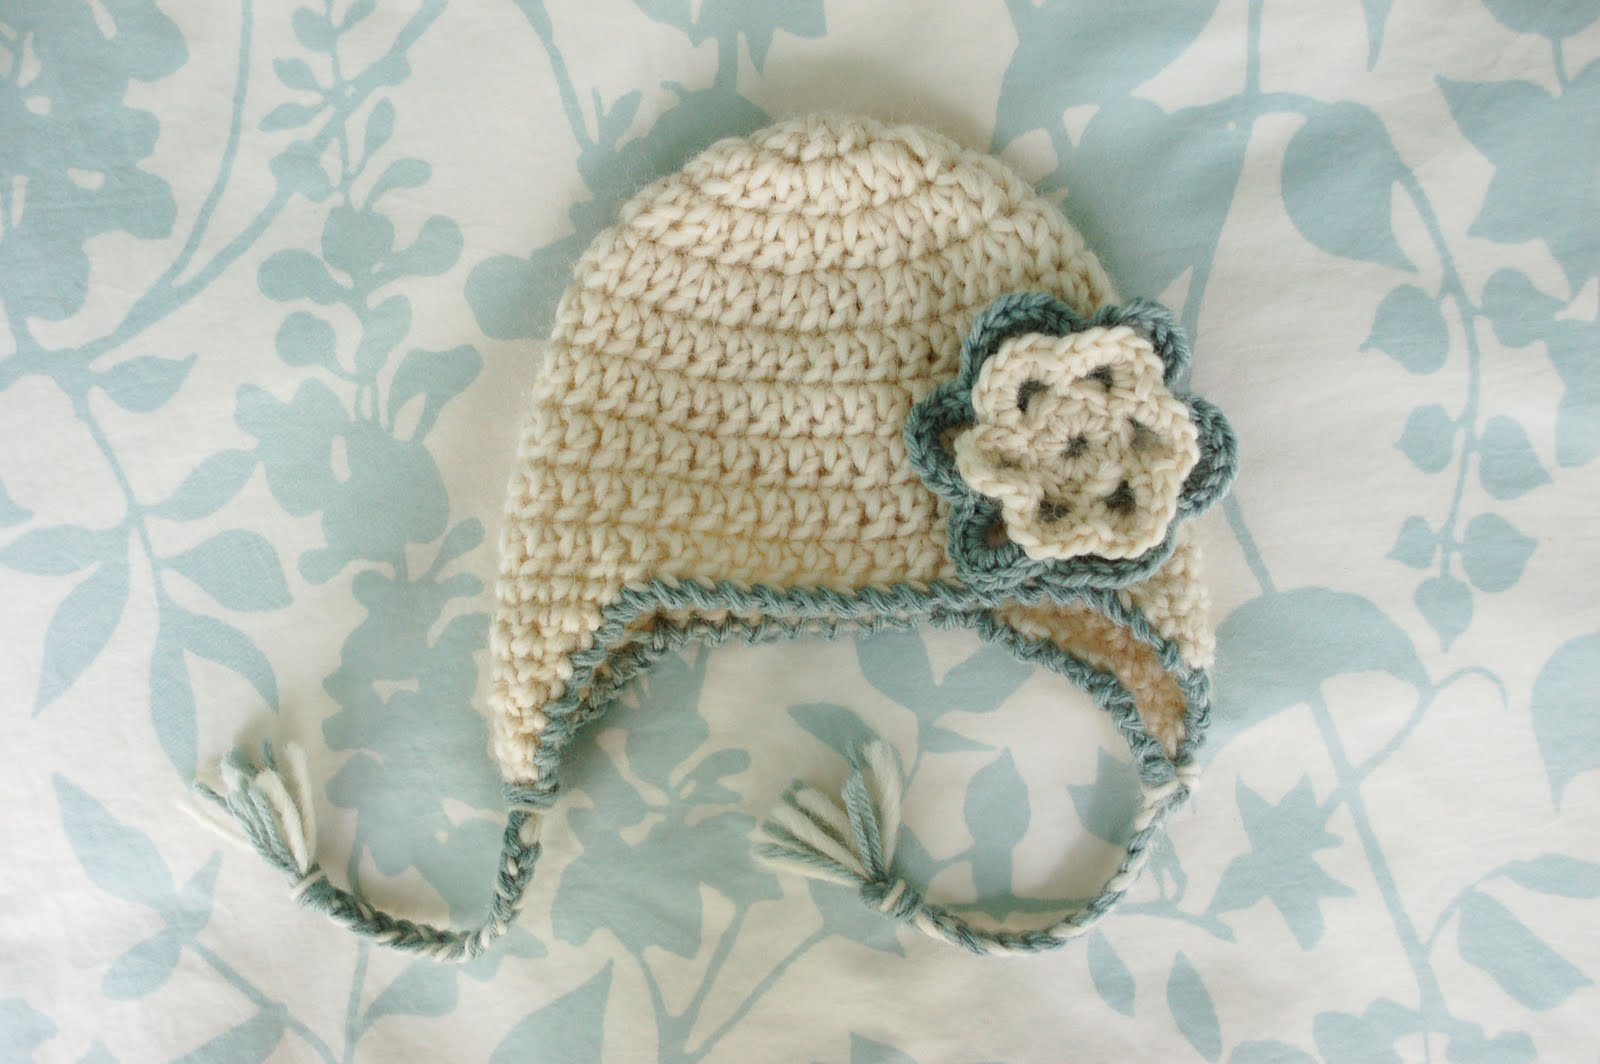 Free Crochet Patterns For Newborn Baby Hats : Crochet For Free: Newborn Earflap Hat